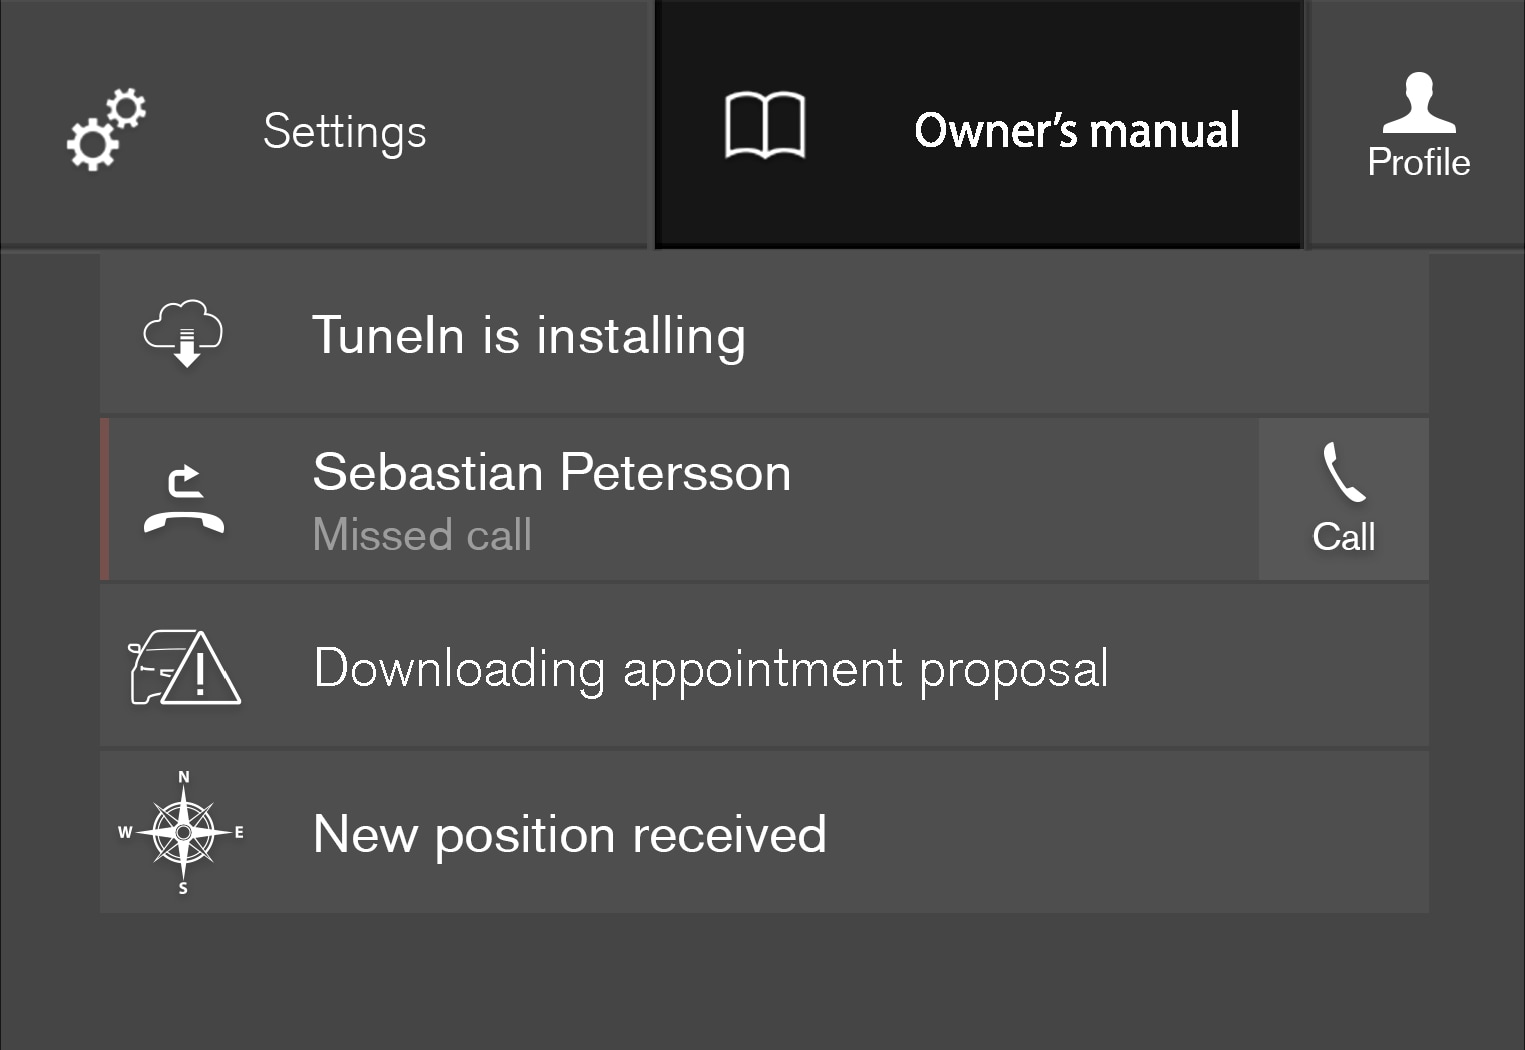 P5-1717-Owner's manual in settings pane-Highlighted